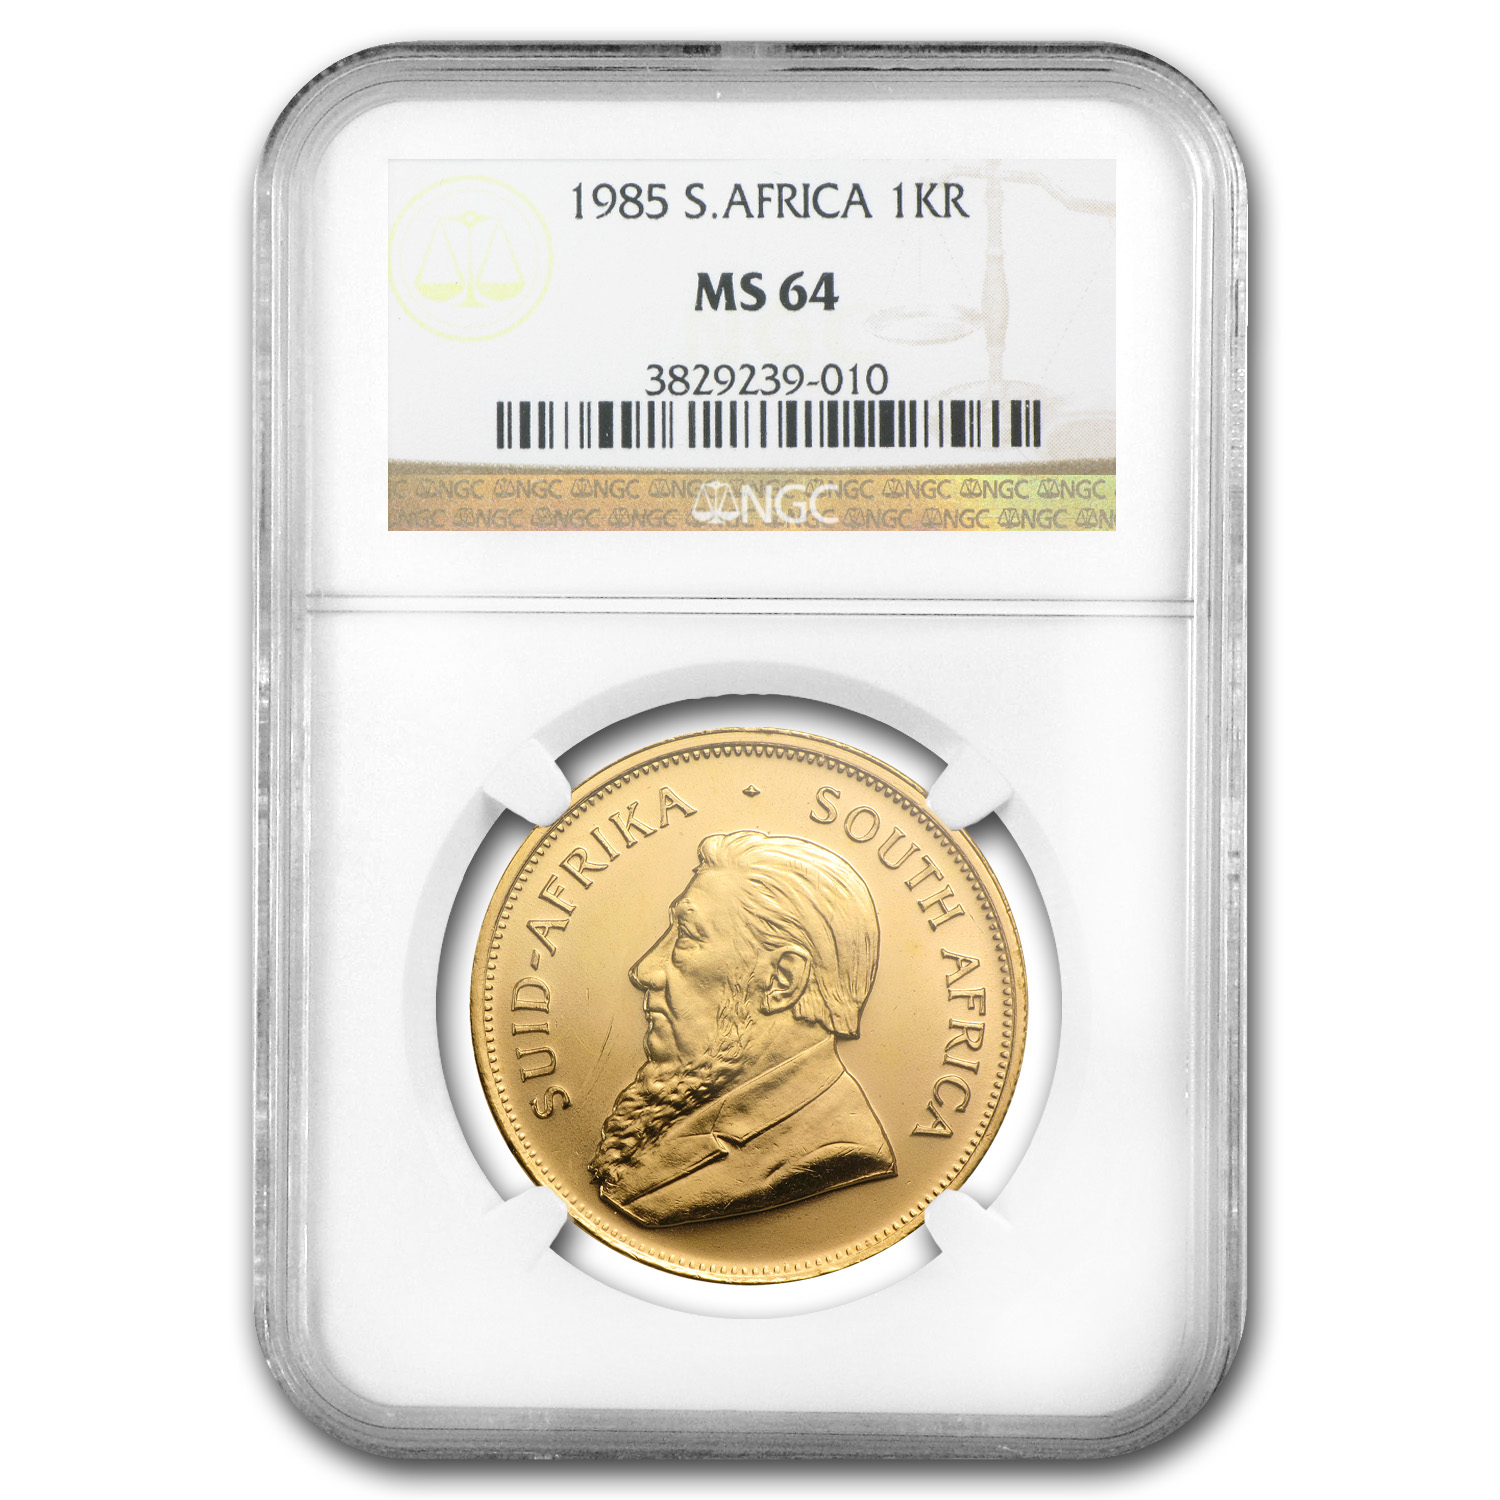 1985 1 oz Gold South African Krugerrand MS-64 NGC